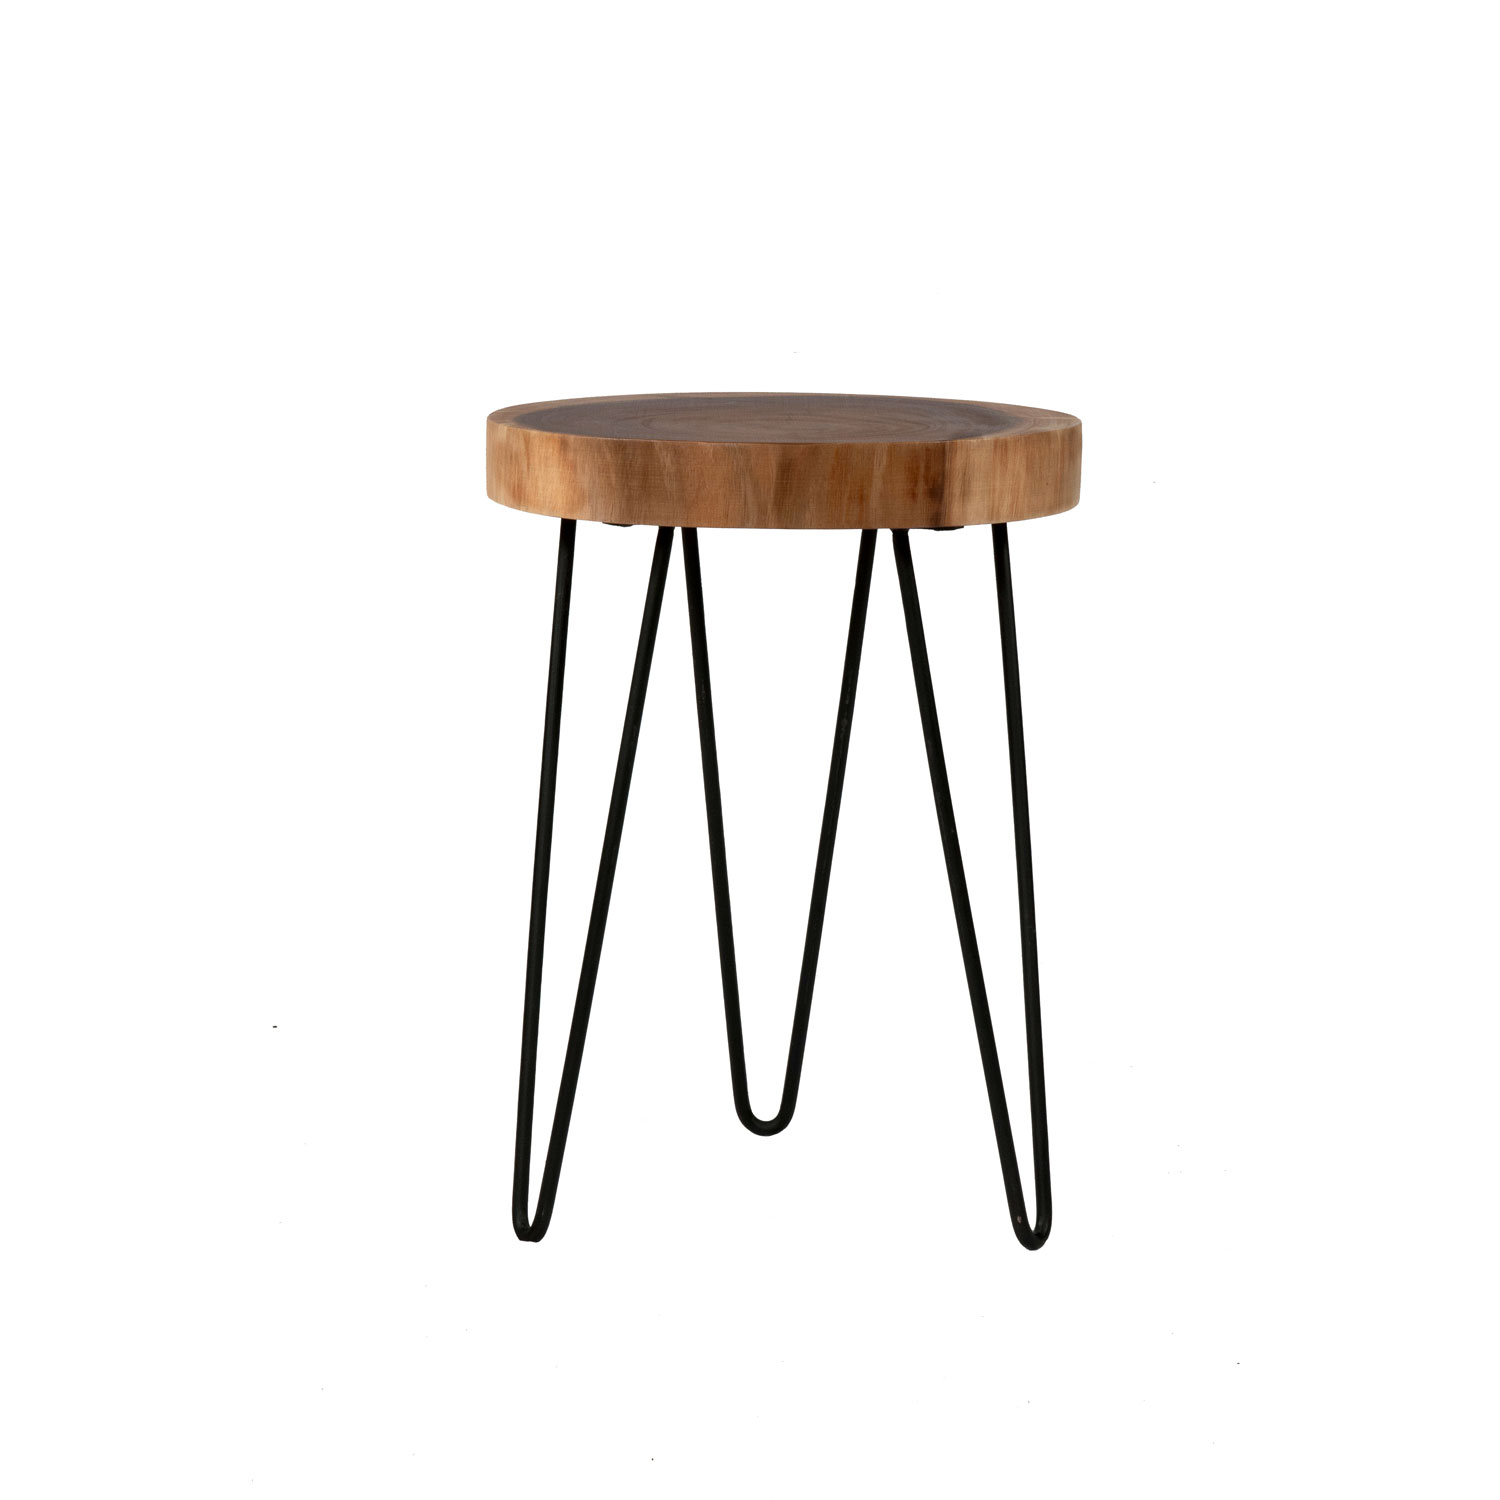 harper round wood and metal accent table ideas teakwood hover zoom phoebe lamp mats coasters green placemats napkins set slim end tables target frame side currey company antique